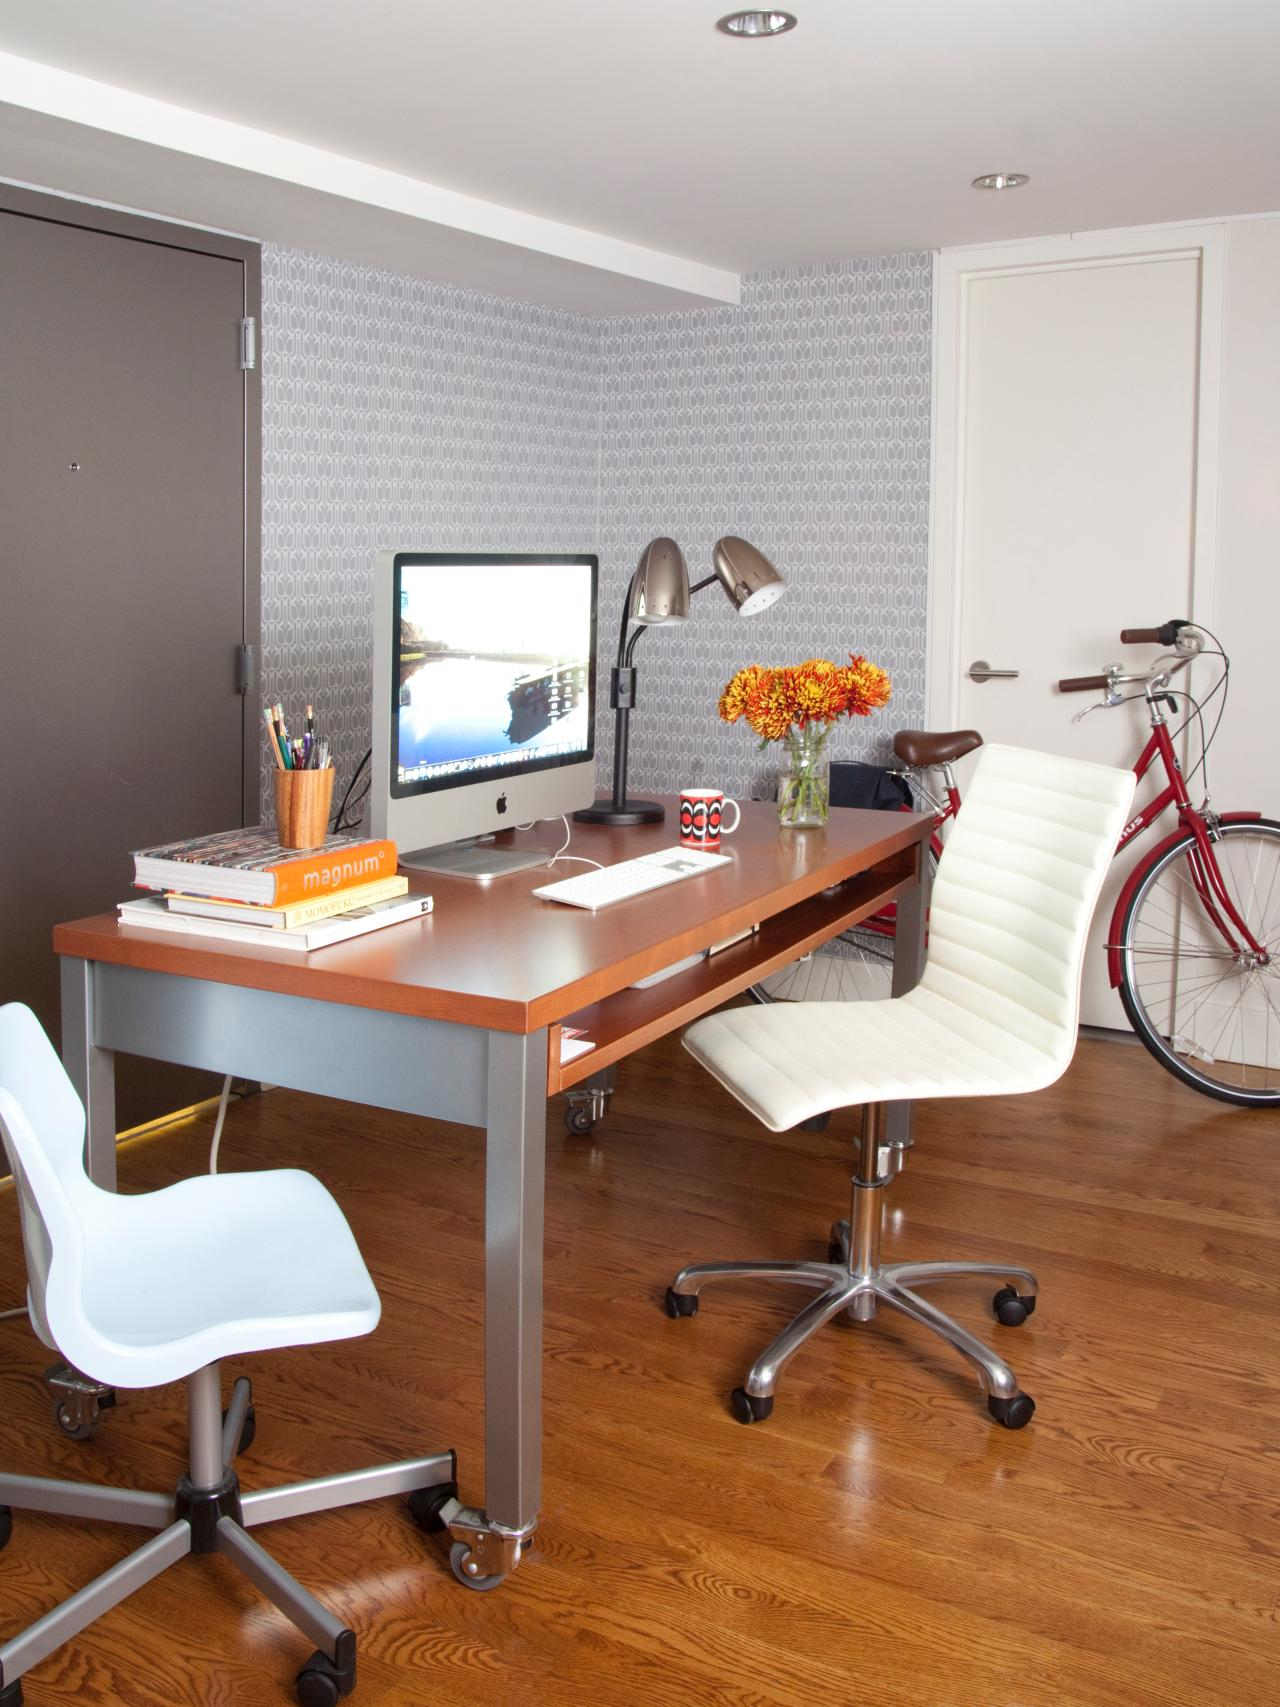 Small home office ideas decorating and design ideas for How to decorate a home office